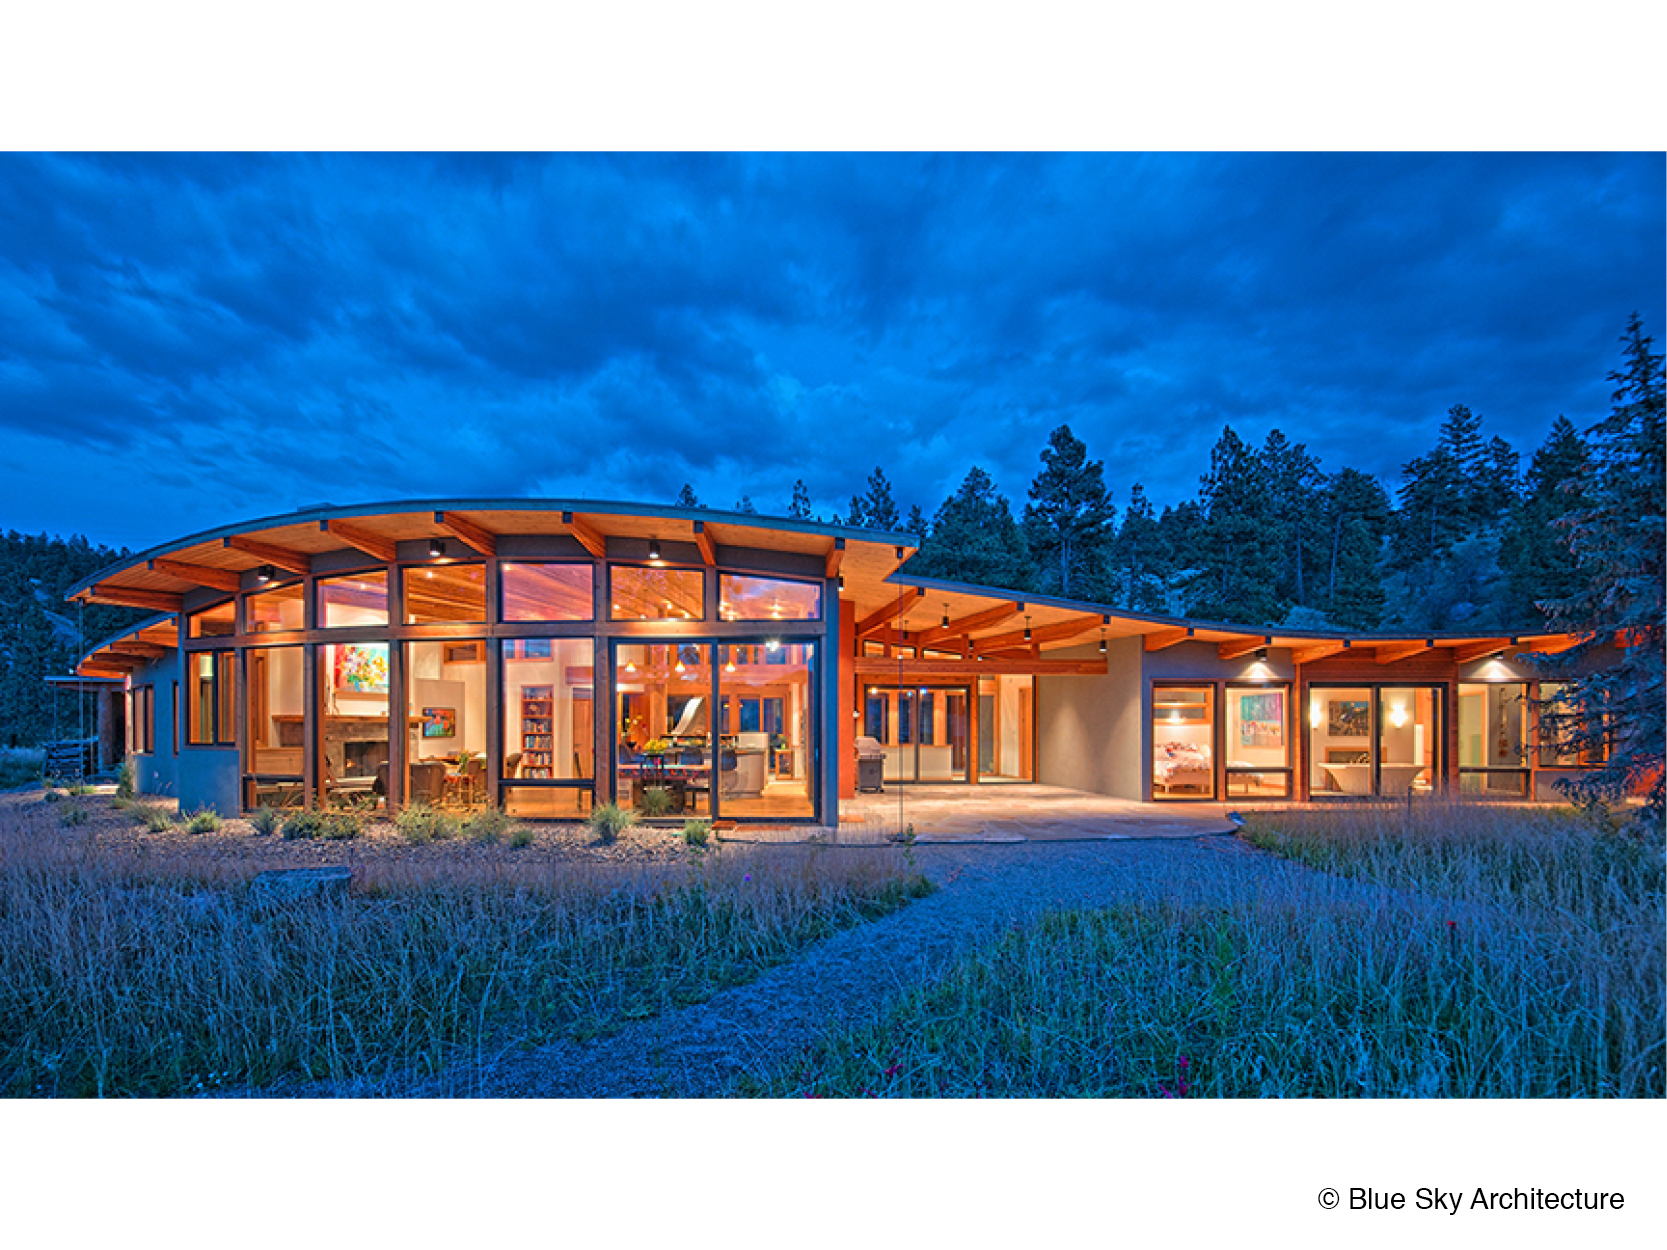 Lakefront heavy timber architecture for a residence